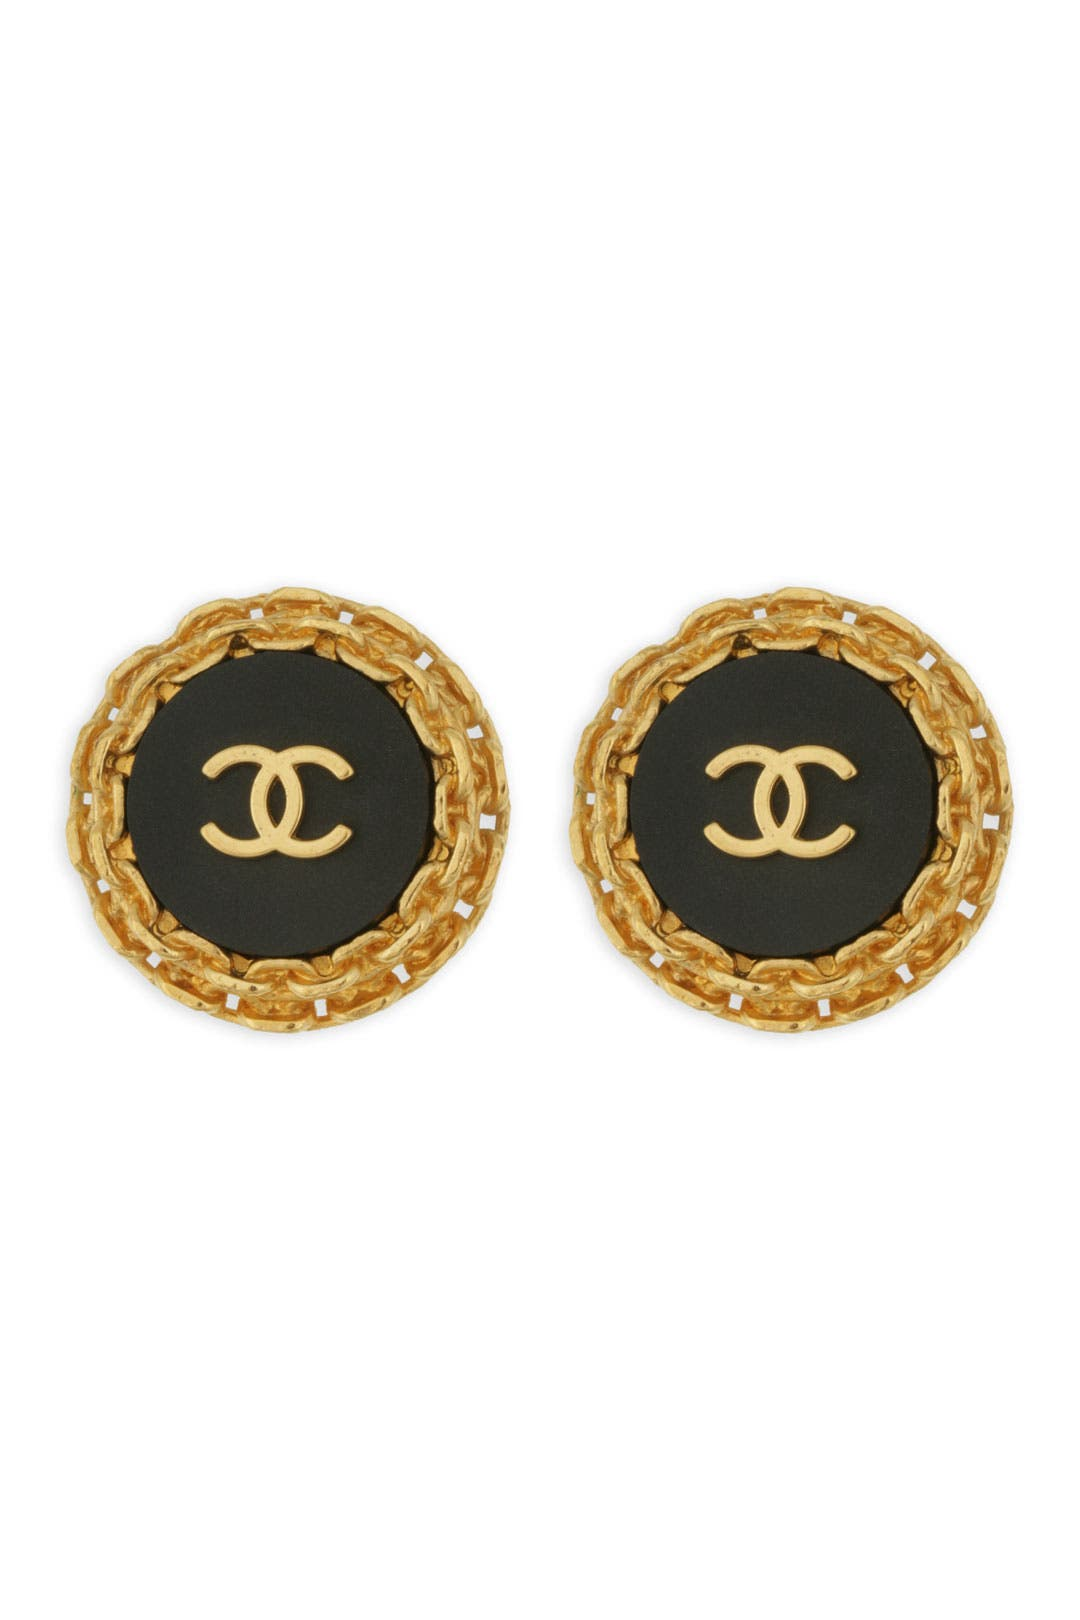 Vintage Chanel Black Button CC Earrings by WGACA Vintage